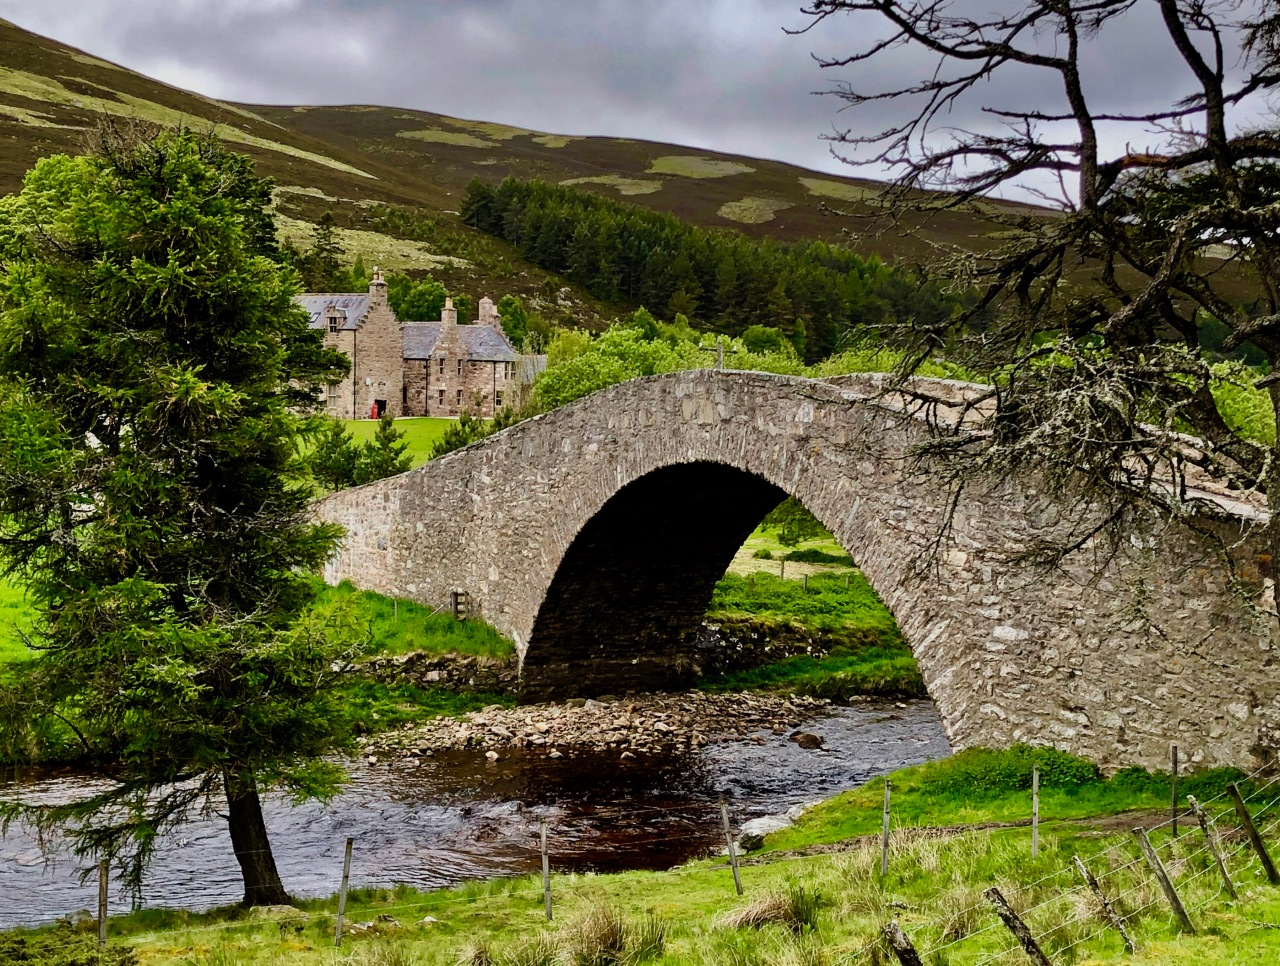 Scottish Stone Bridge